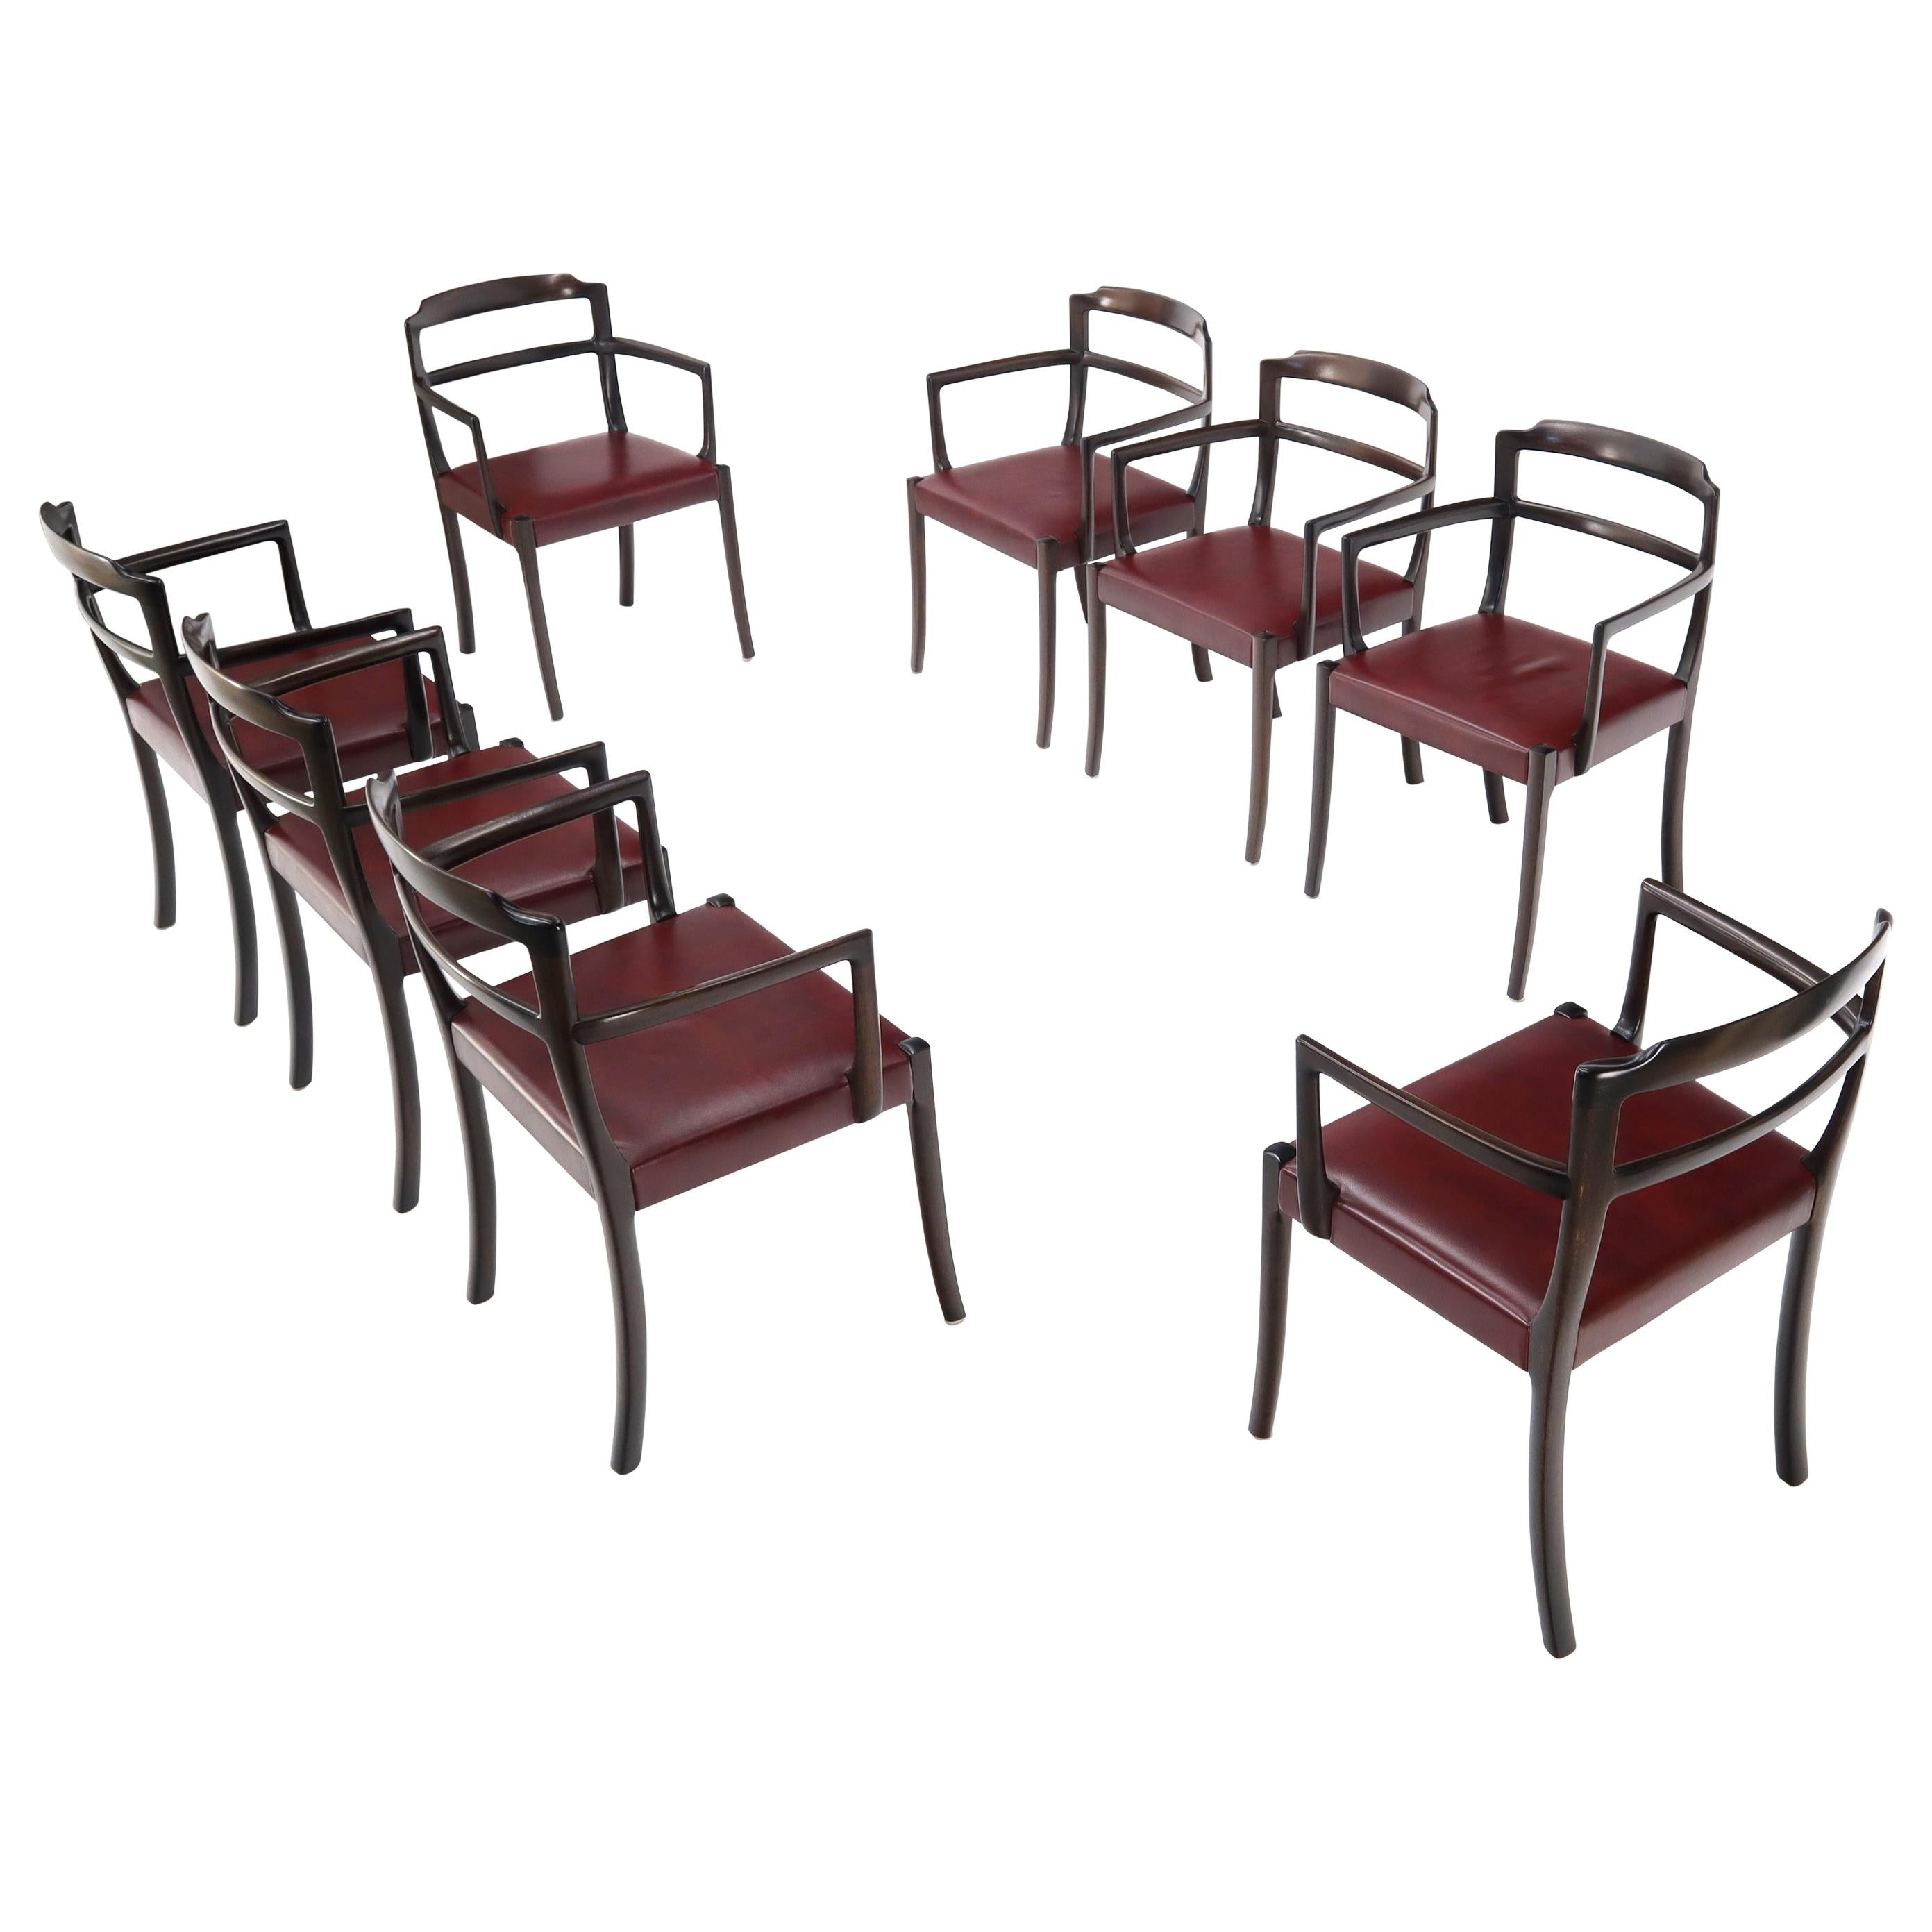 Set of 8 Eight Rosewood Danish Mid-Century Modern Dining Chairs with Arms